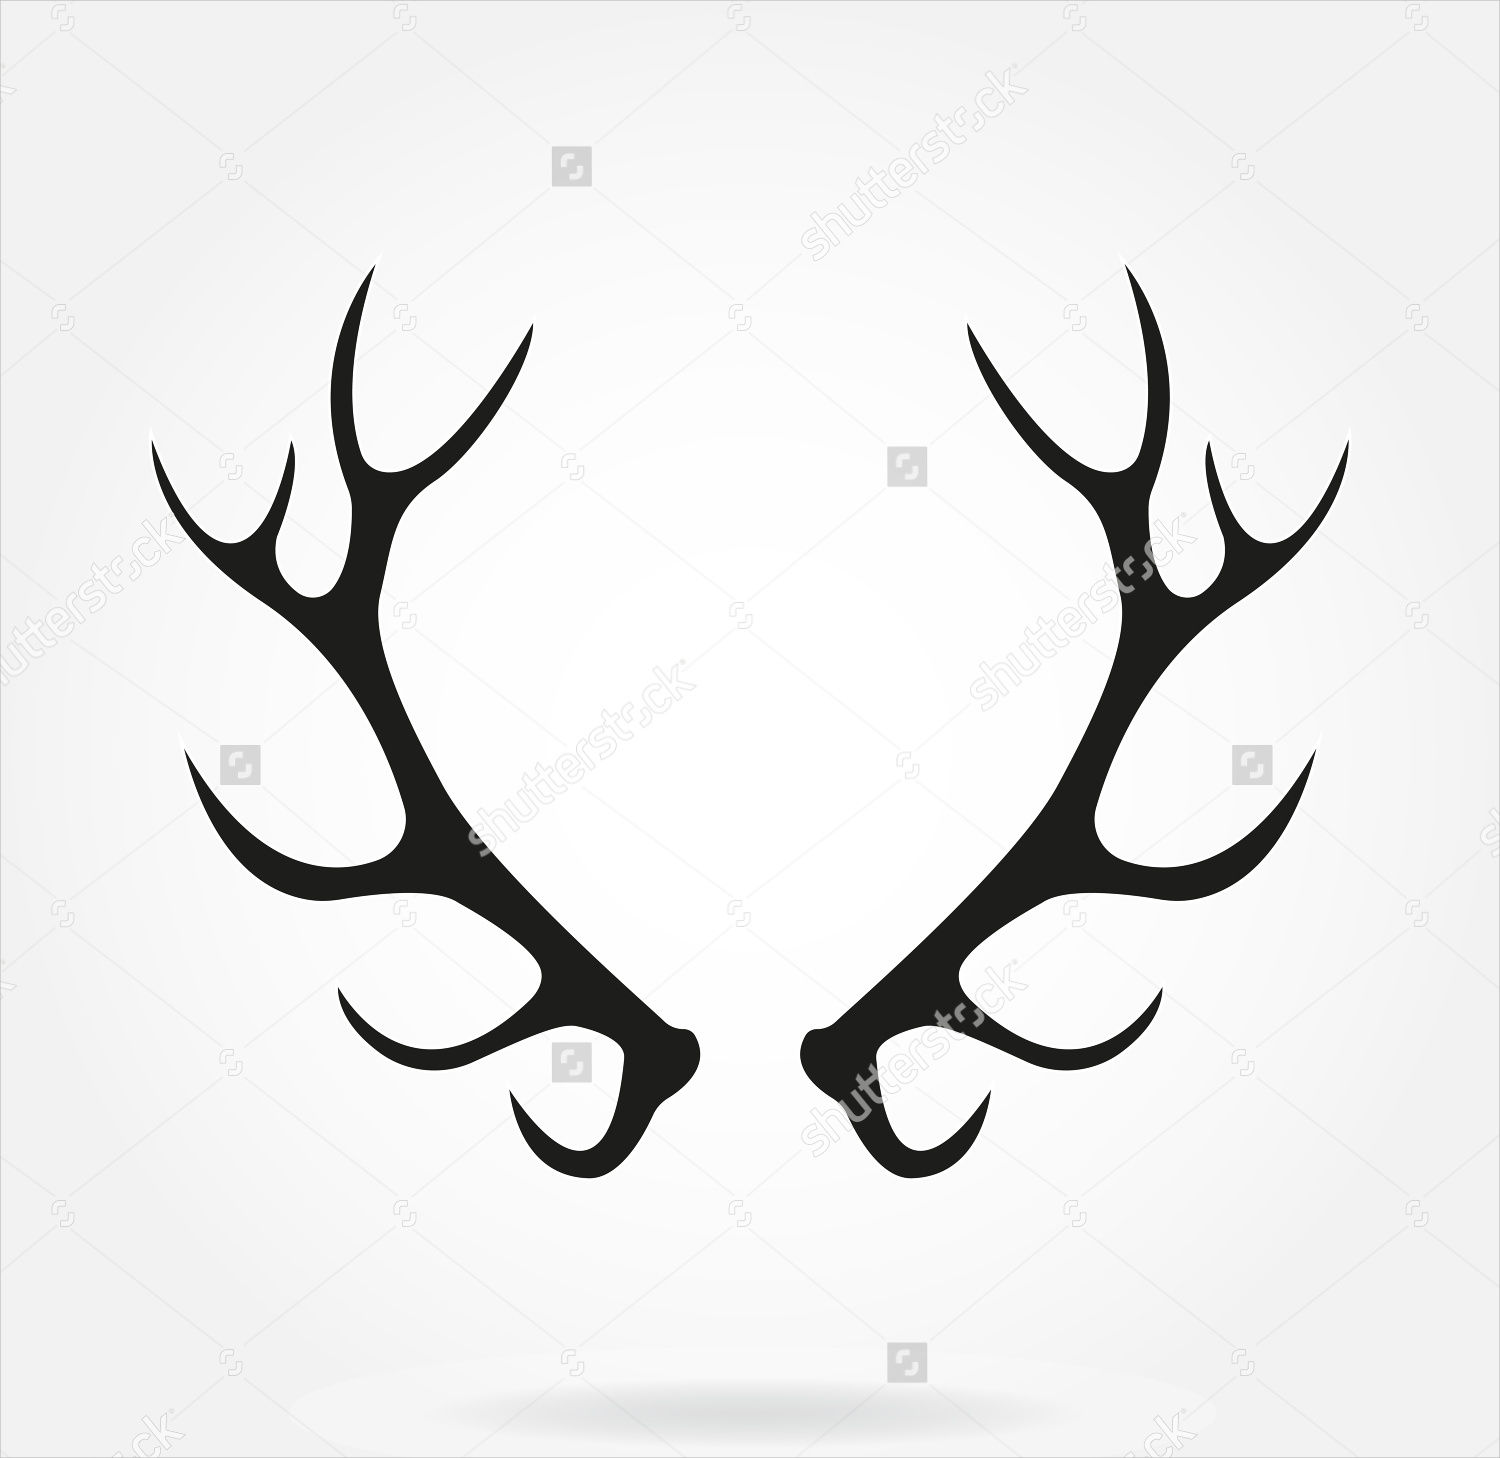 Antler Silhouette Images - Reverse Search